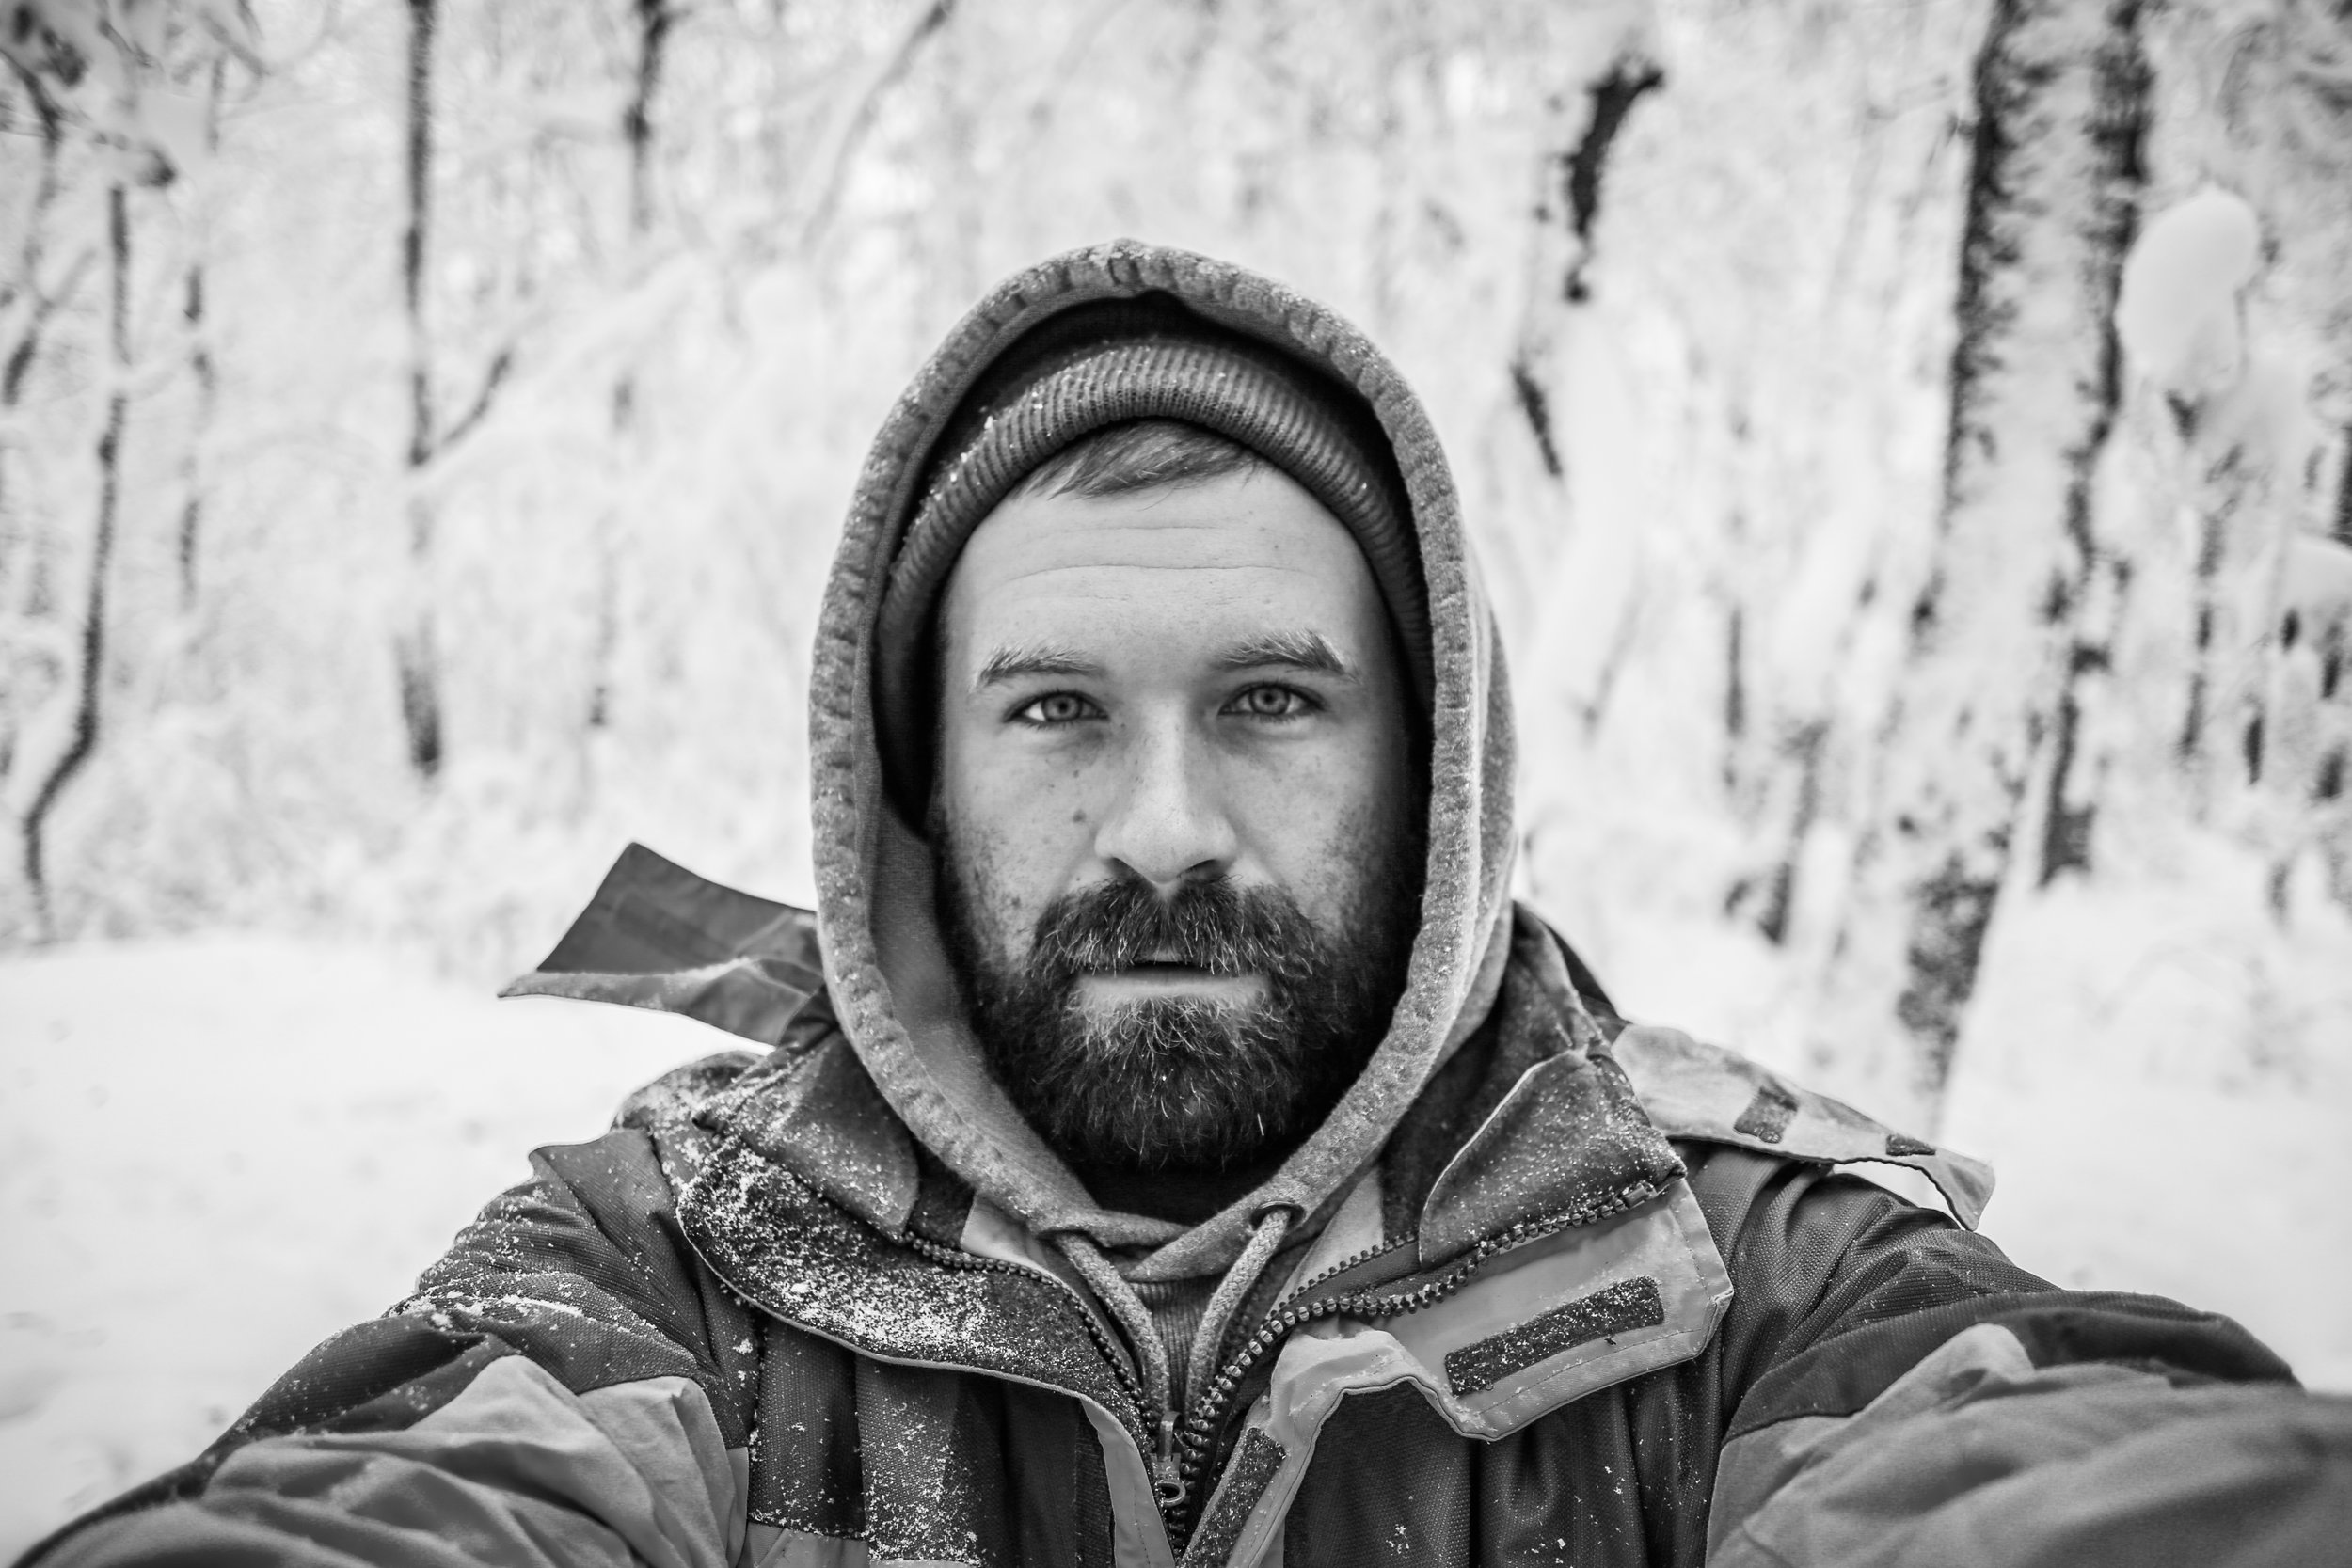 -a cold selfie after spending the night on a snowy section of the Appalachian Trail